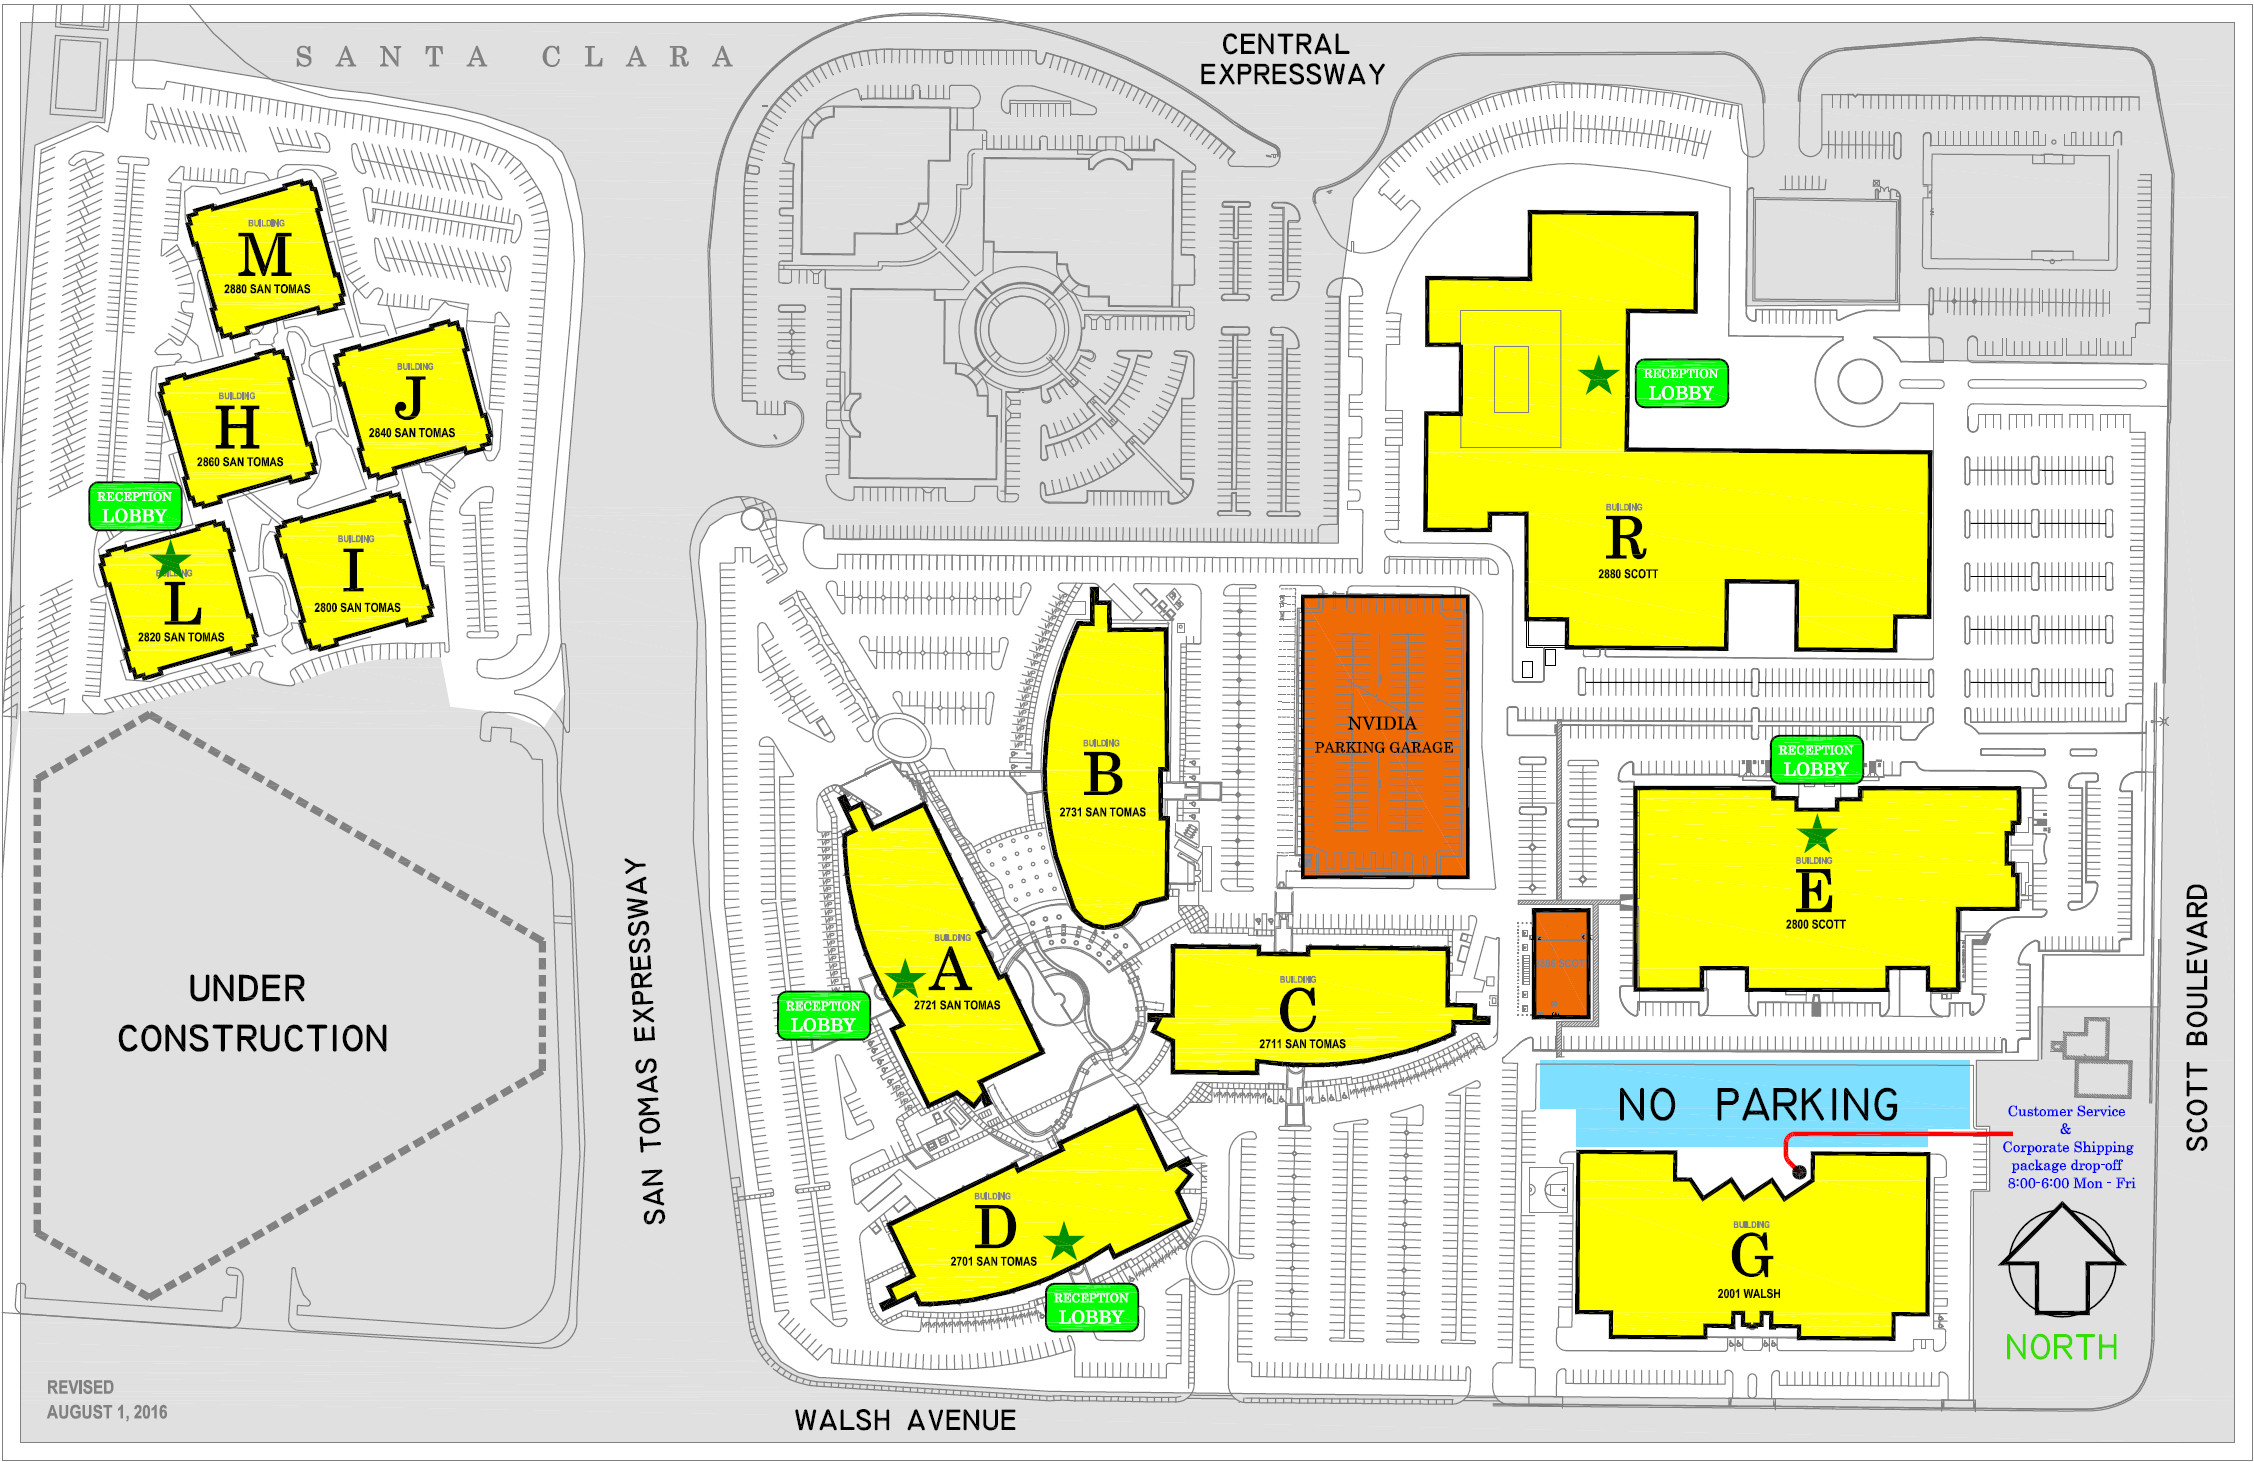 Automated Vehicles: Challenges and Opportunities on brandon campus map, minneapolis campus map, saint joseph's campus map, claremont campus map, western state campus map, mid valley campus map, west los angeles campus map, san francisco university campus map, newark campus map, fresno campus map, malone campus map, marion campus map, le moyne campus map, nevada campus map, pasadena campus map, san marcos campus map, scu campus map, madera campus map, utah valley campus map, sierra campus map,